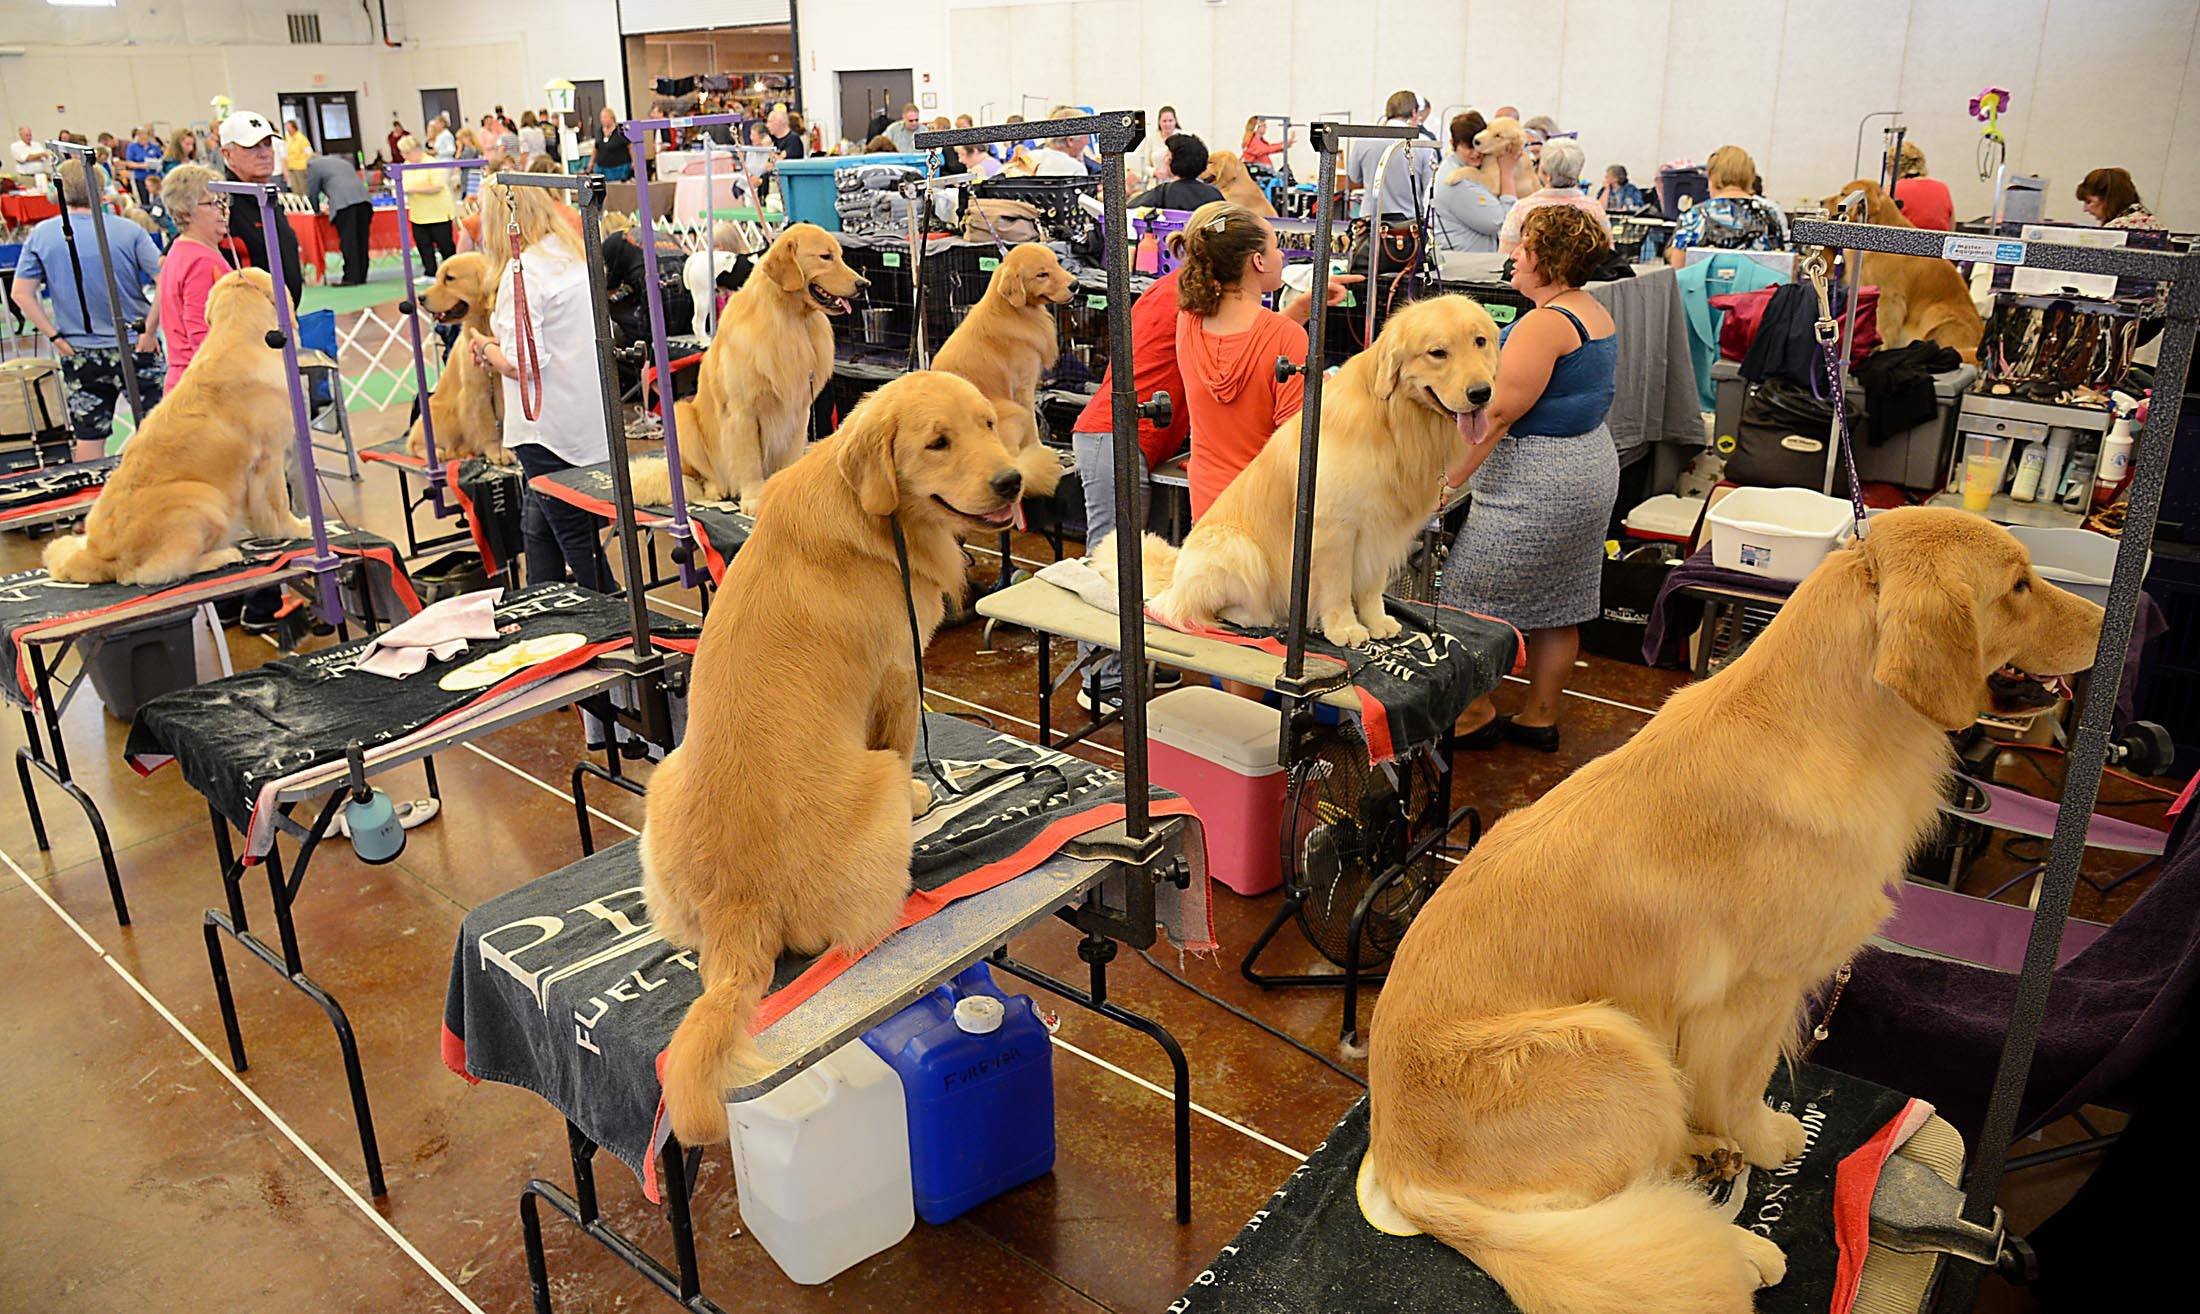 A pack of golden retrievers wait patiently on their grooming tables Saturday at the all-breed dog show sponsored by the Elgin Kennel Club at the Kane County Fairgrounds in St. Charles.